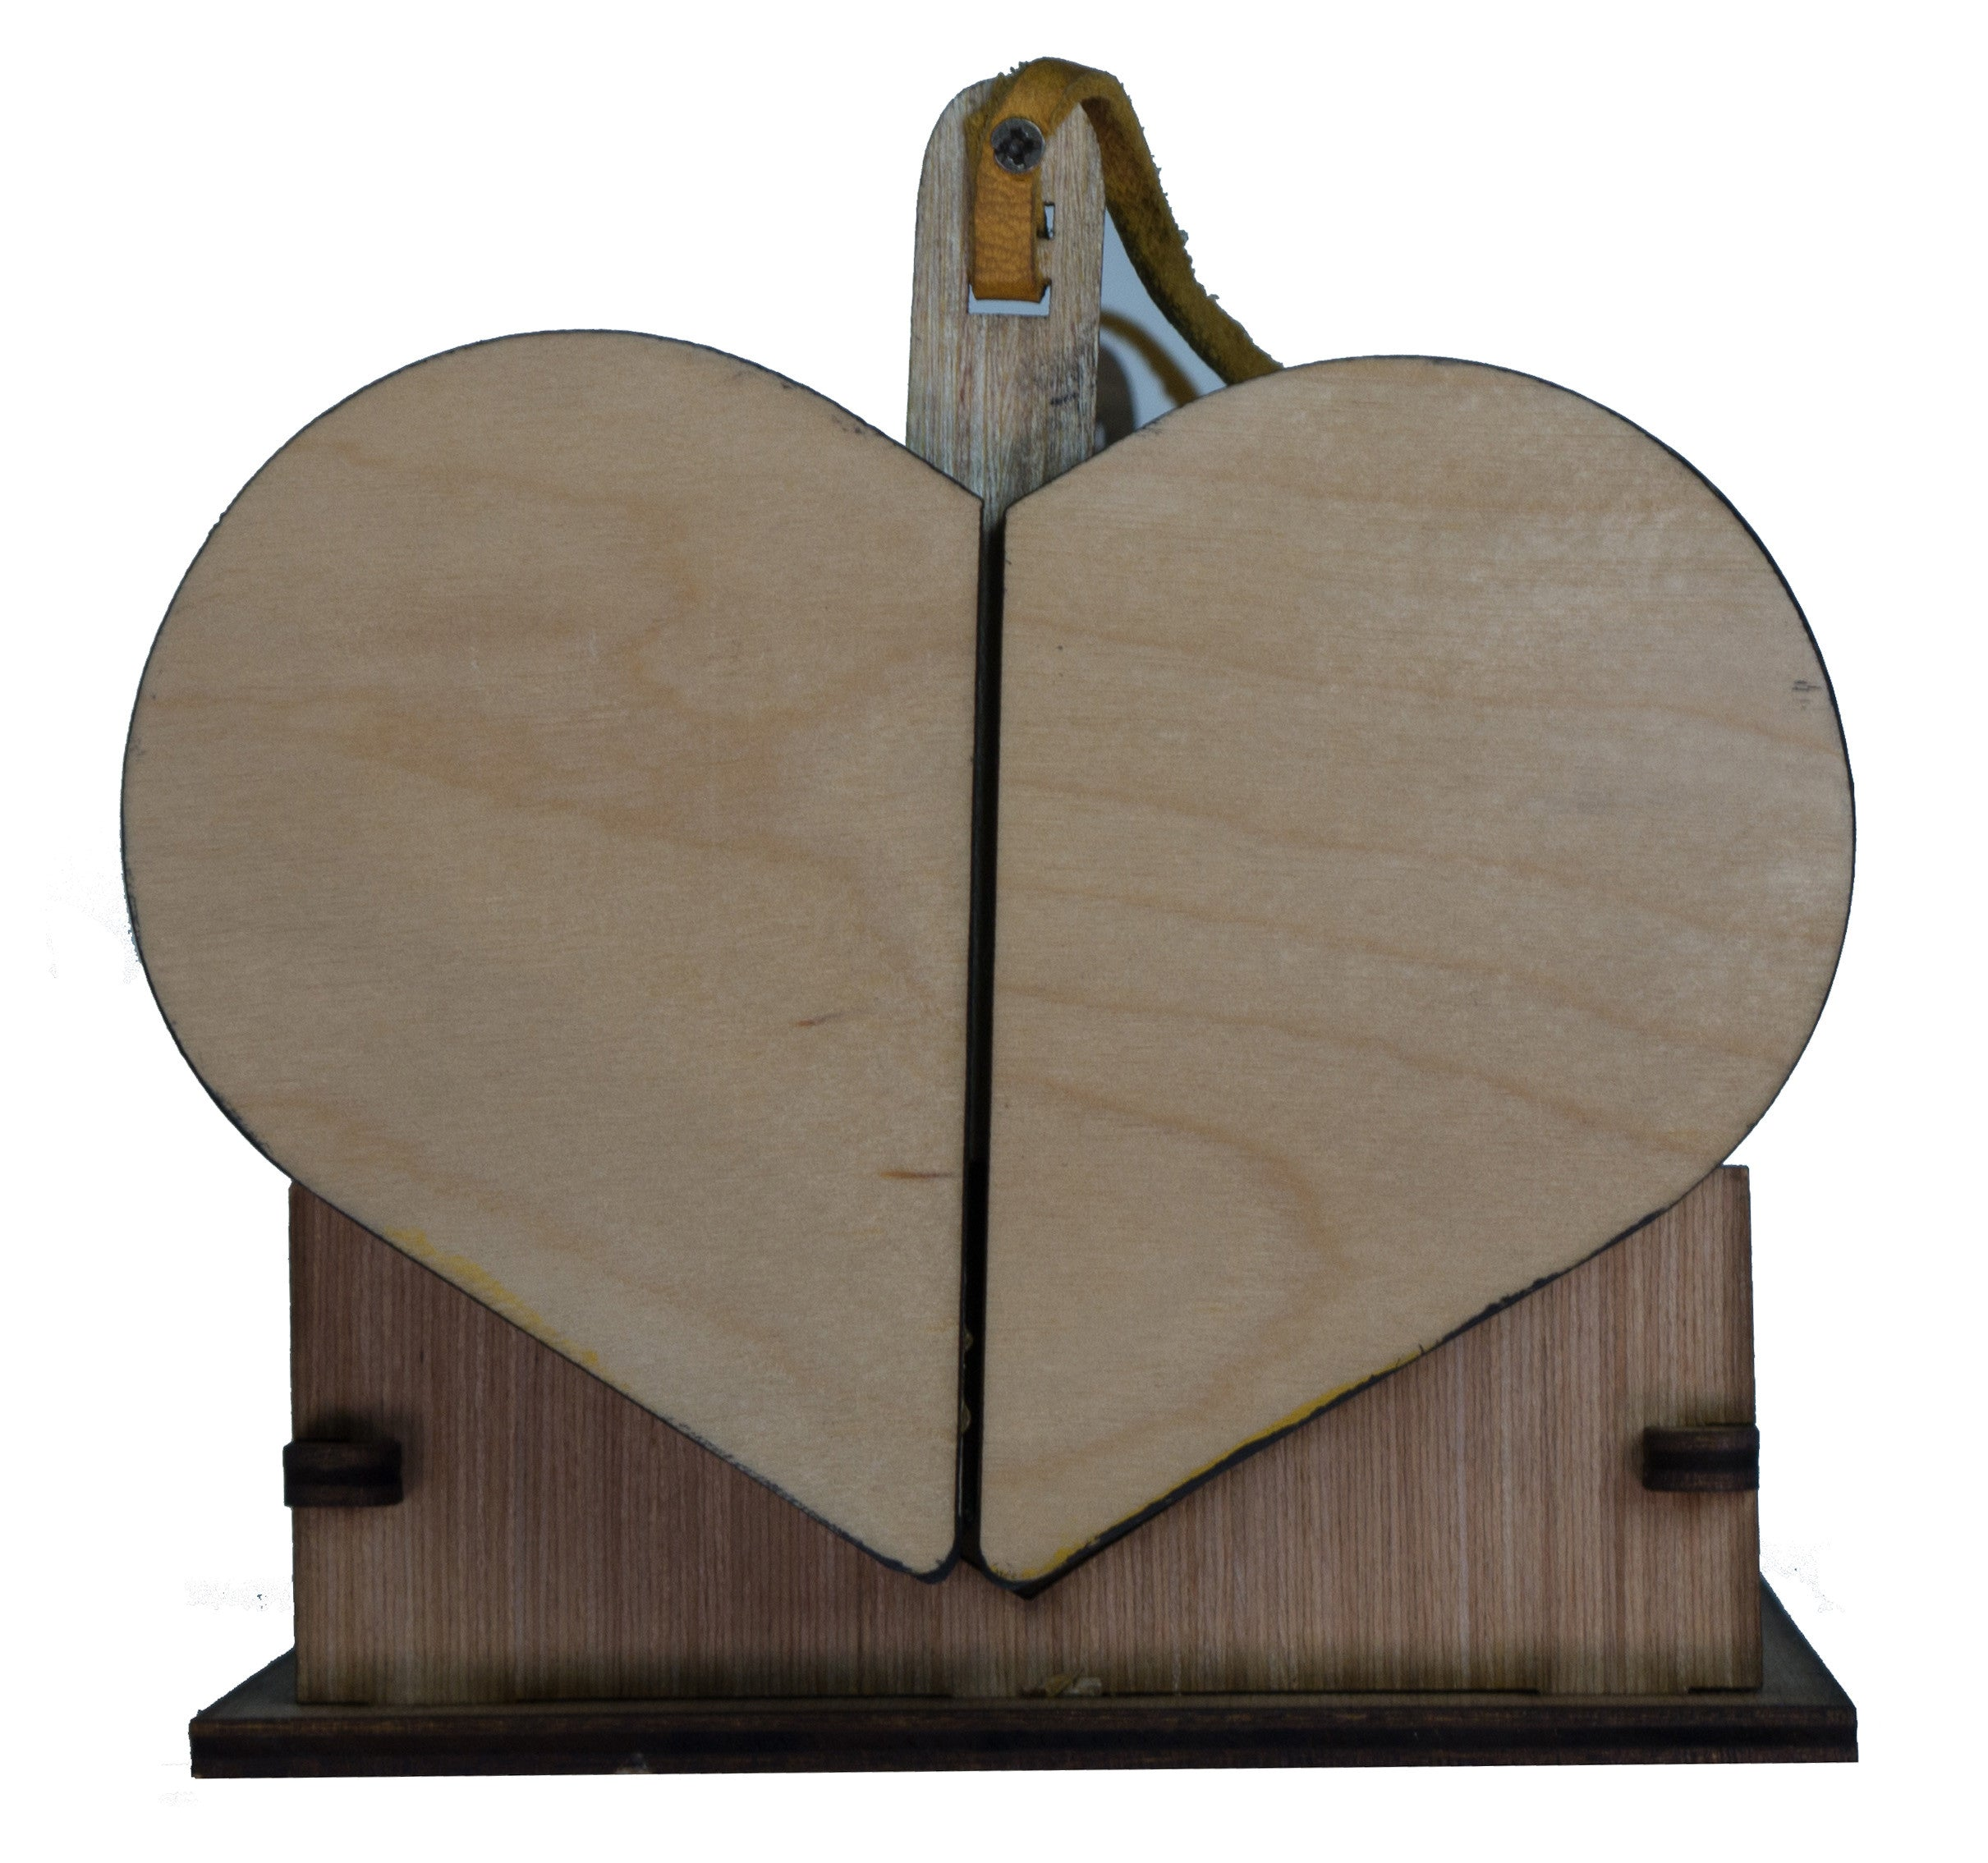 The HEART wooden purse